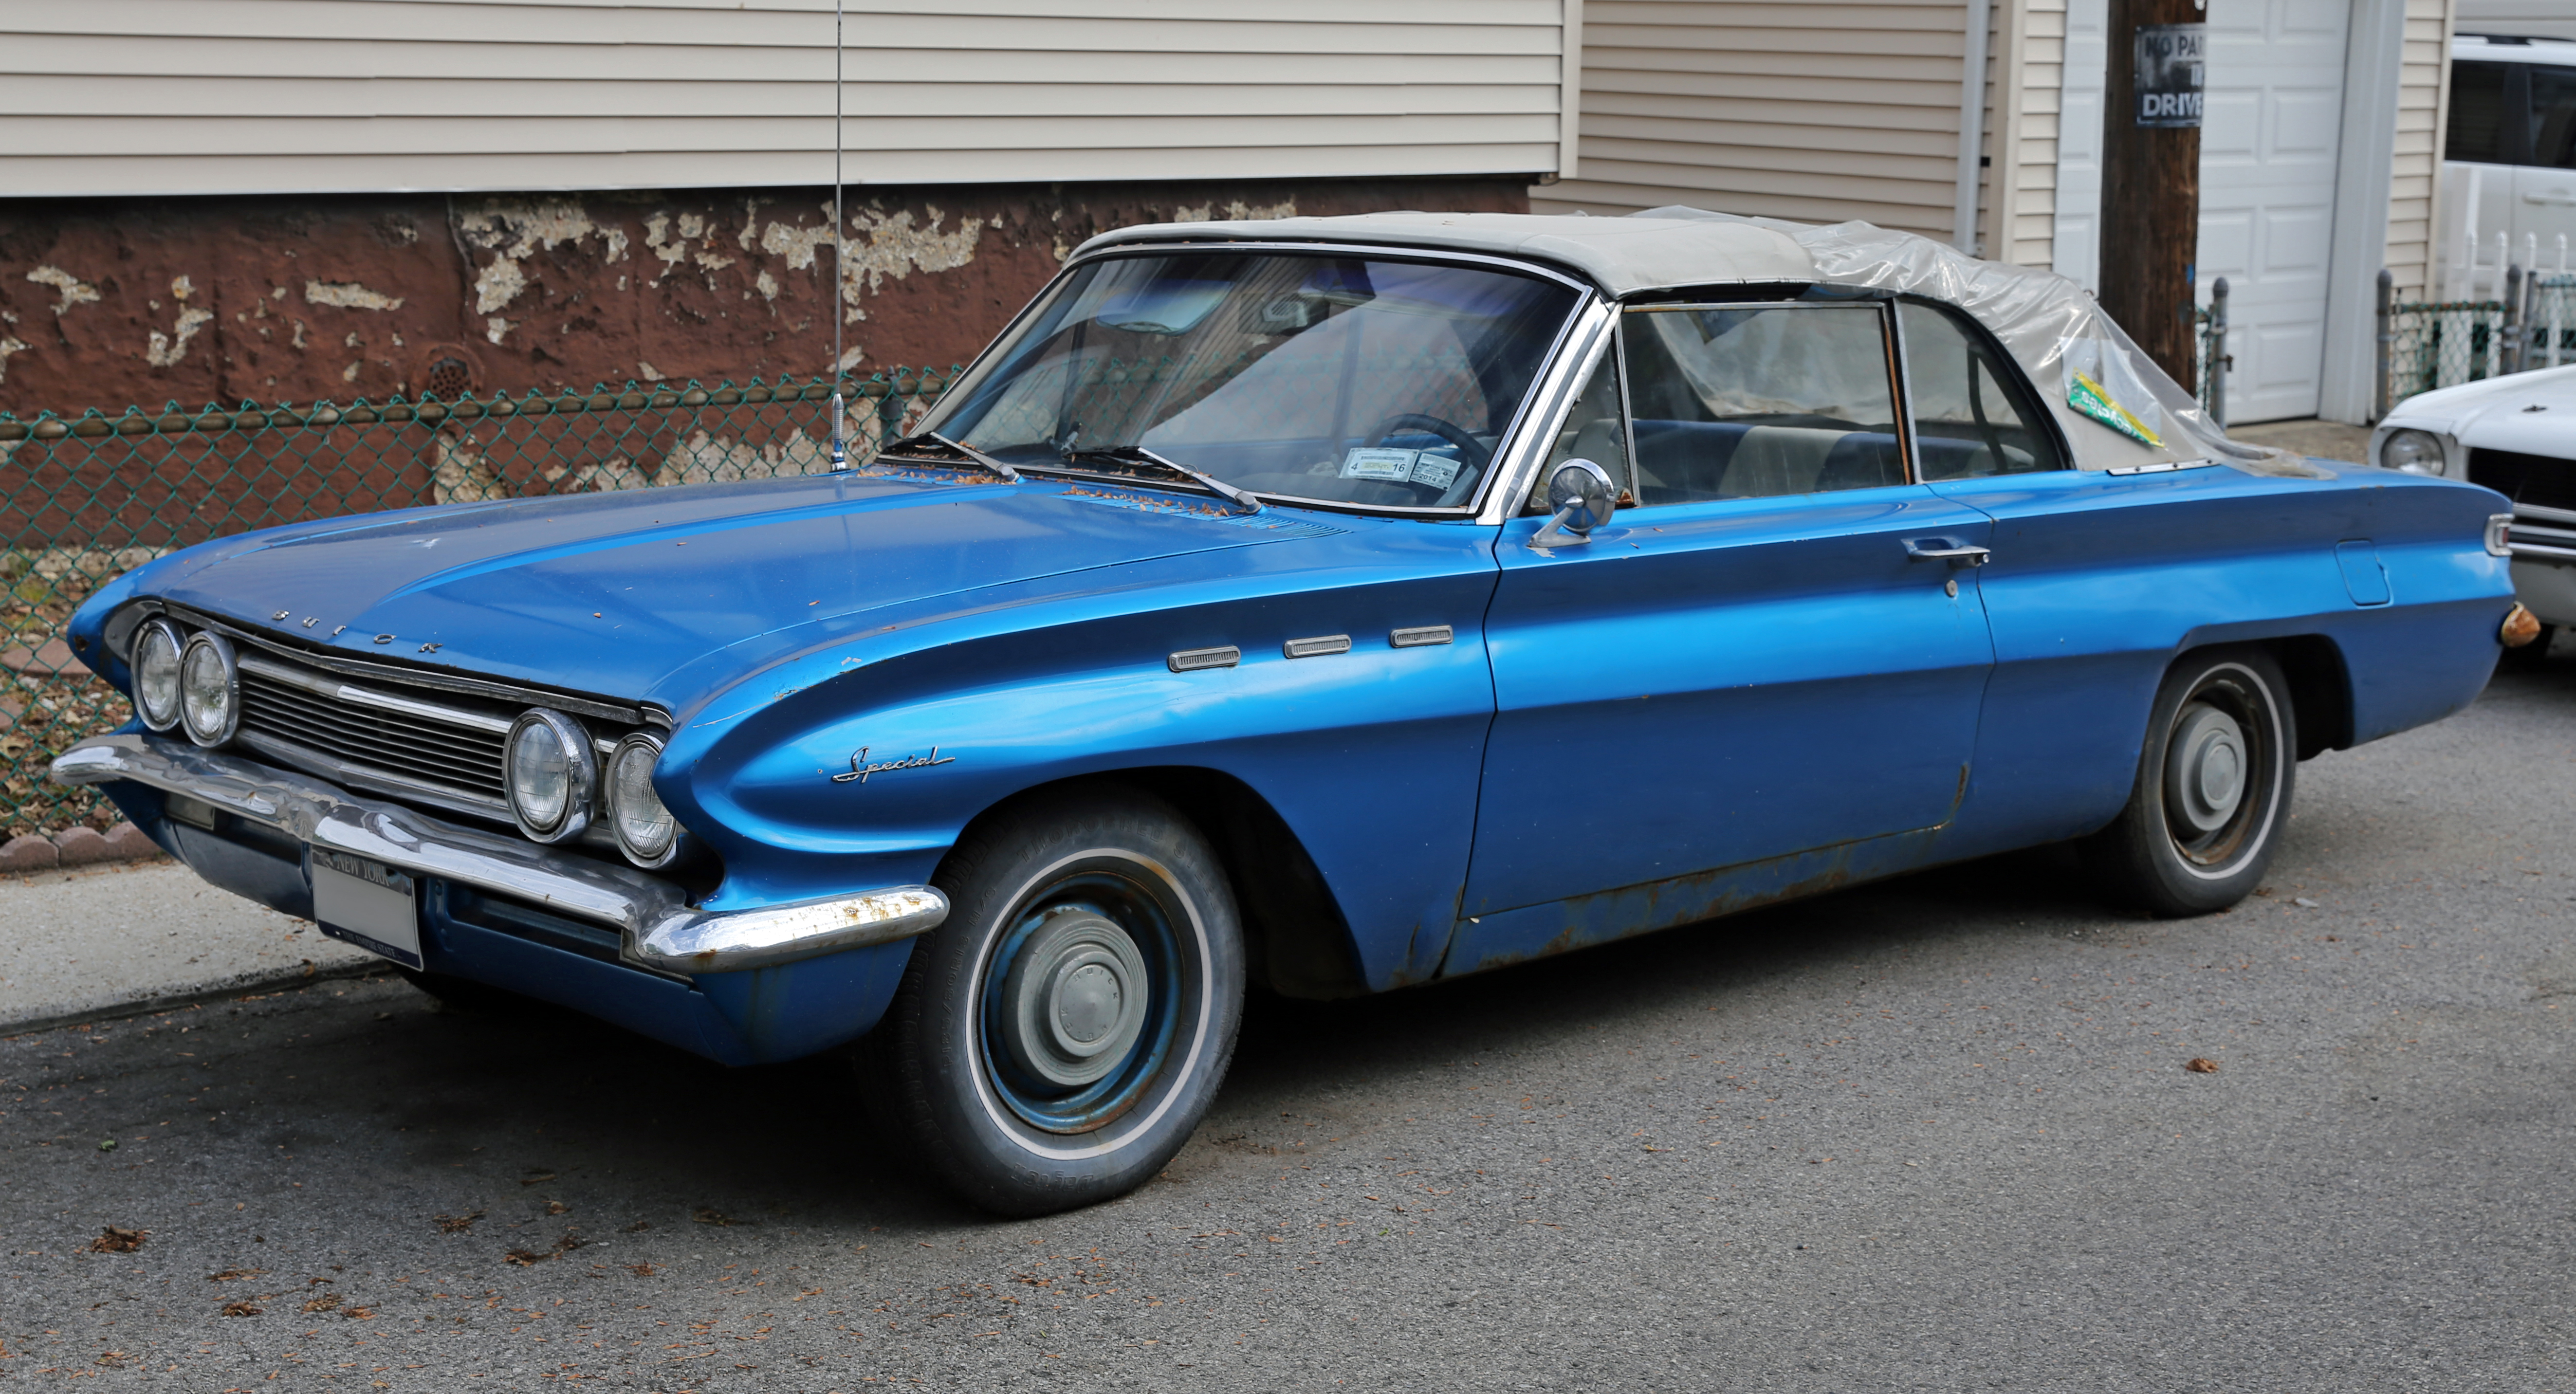 File:1962 Buick Special V6 Convertible fL.jpg - Wikimedia Commons